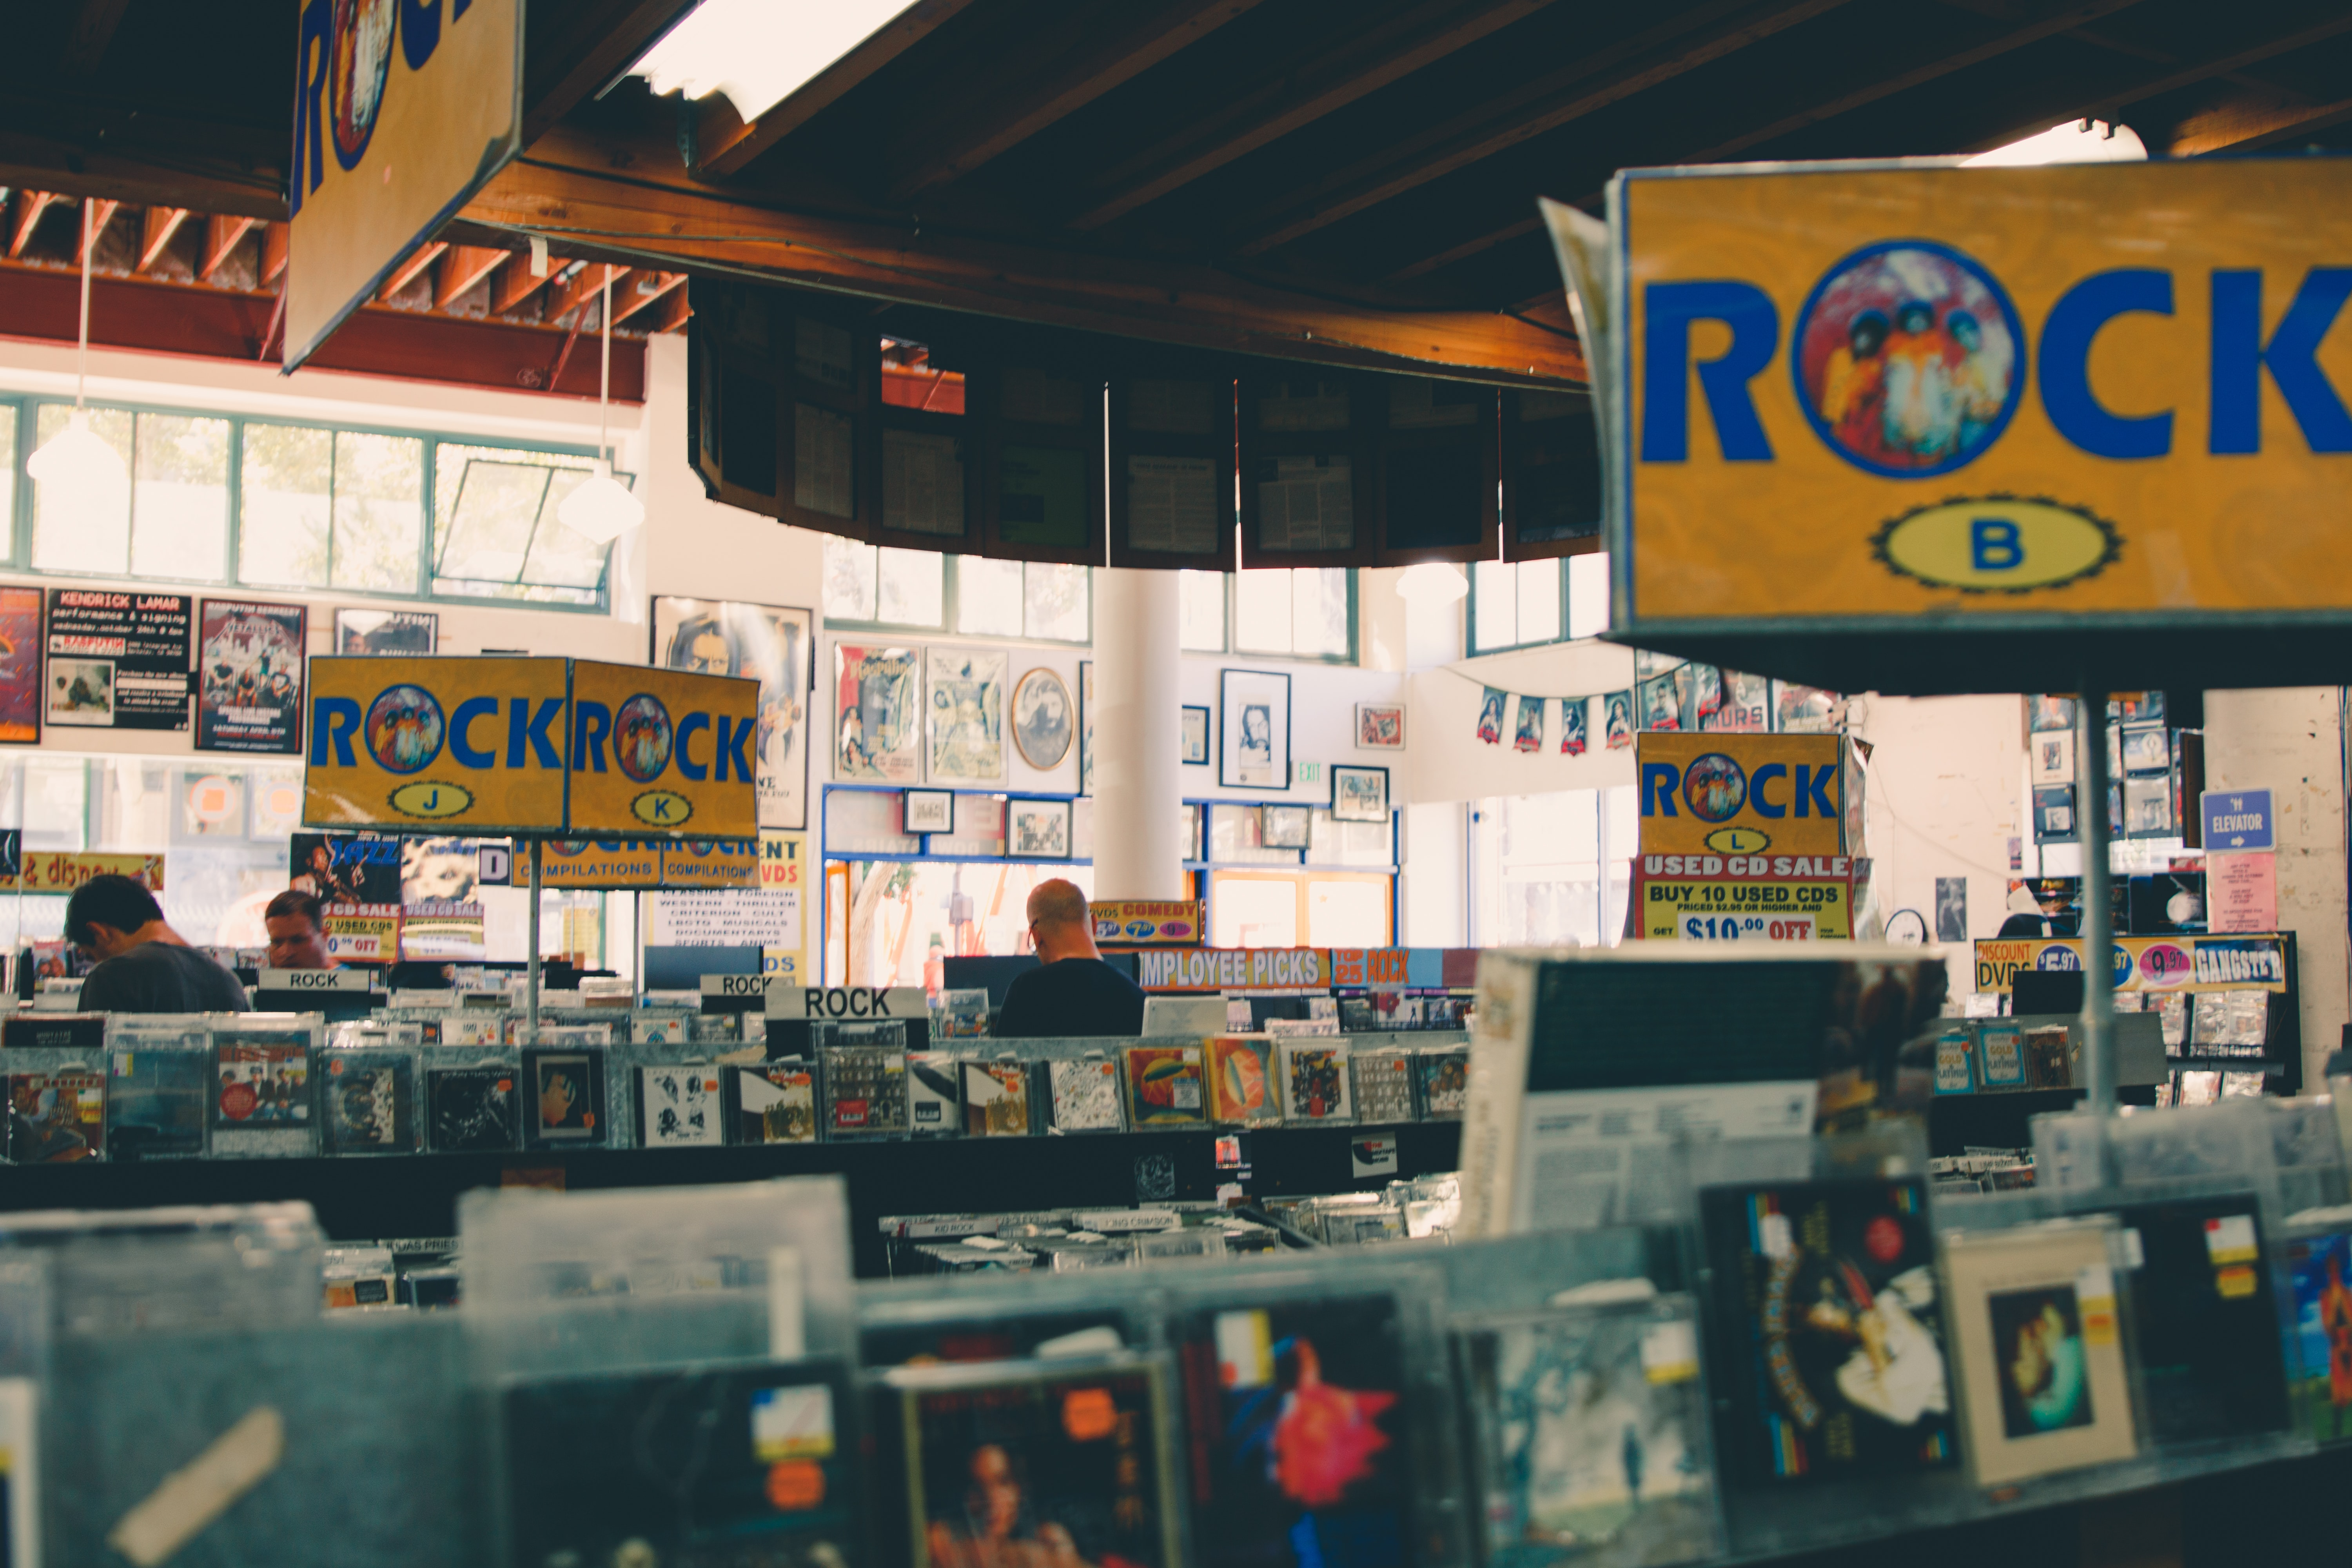 The interior of a record store